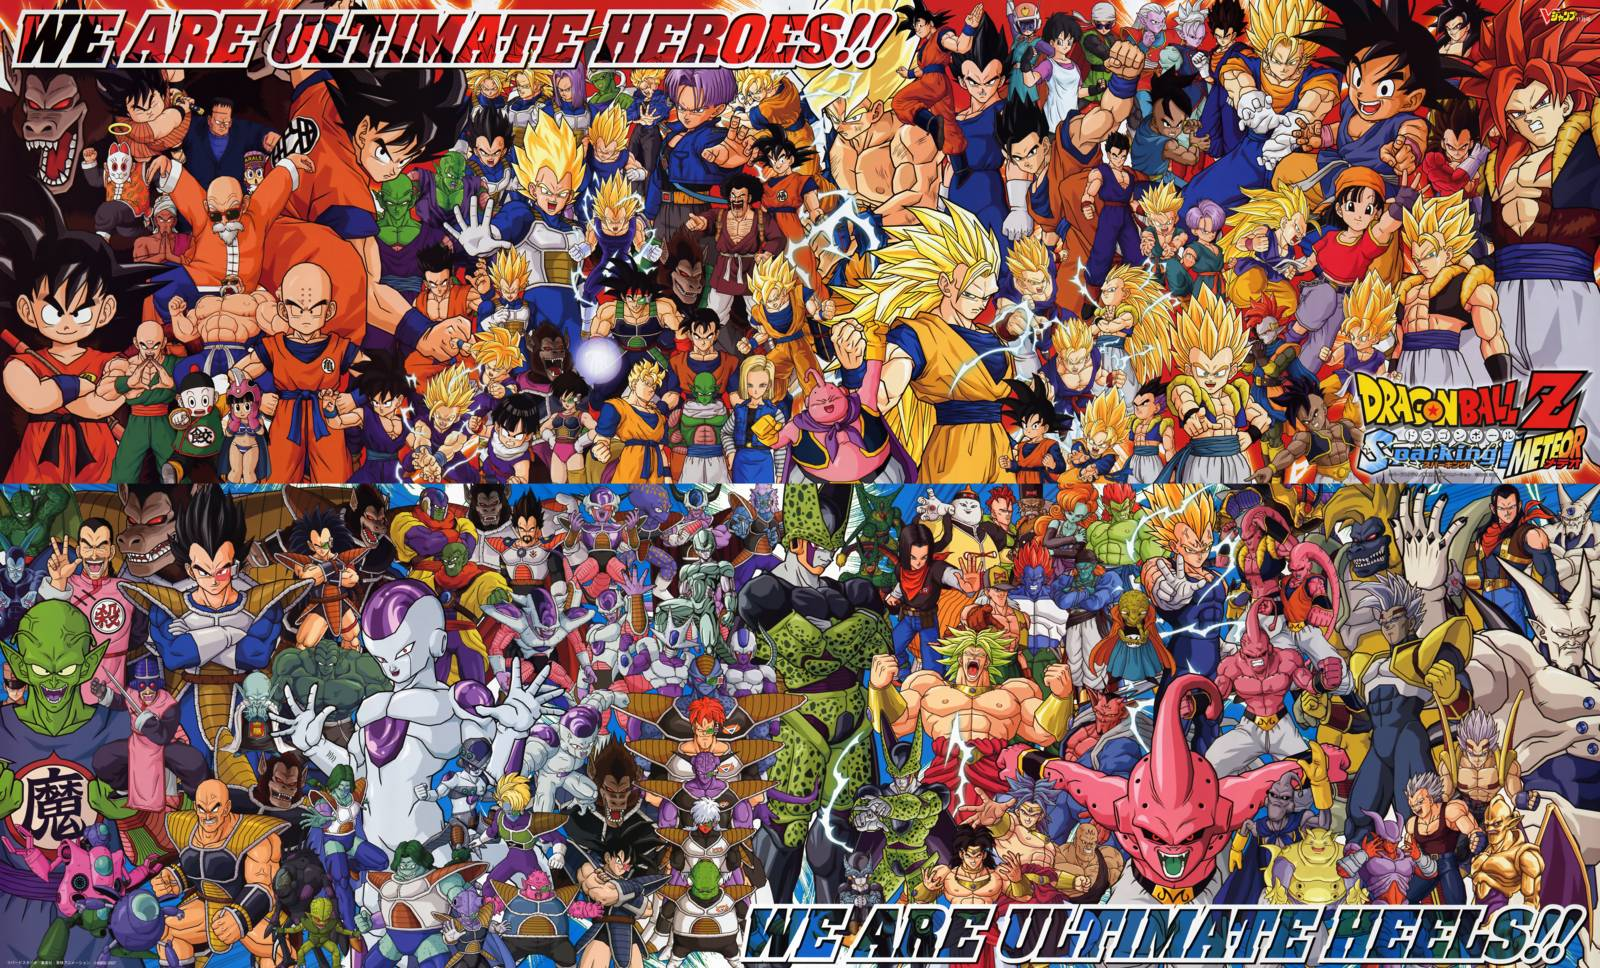 Dragon Ball Z Cartoon Characters Names : Image dragonball z anime all dbz characters g